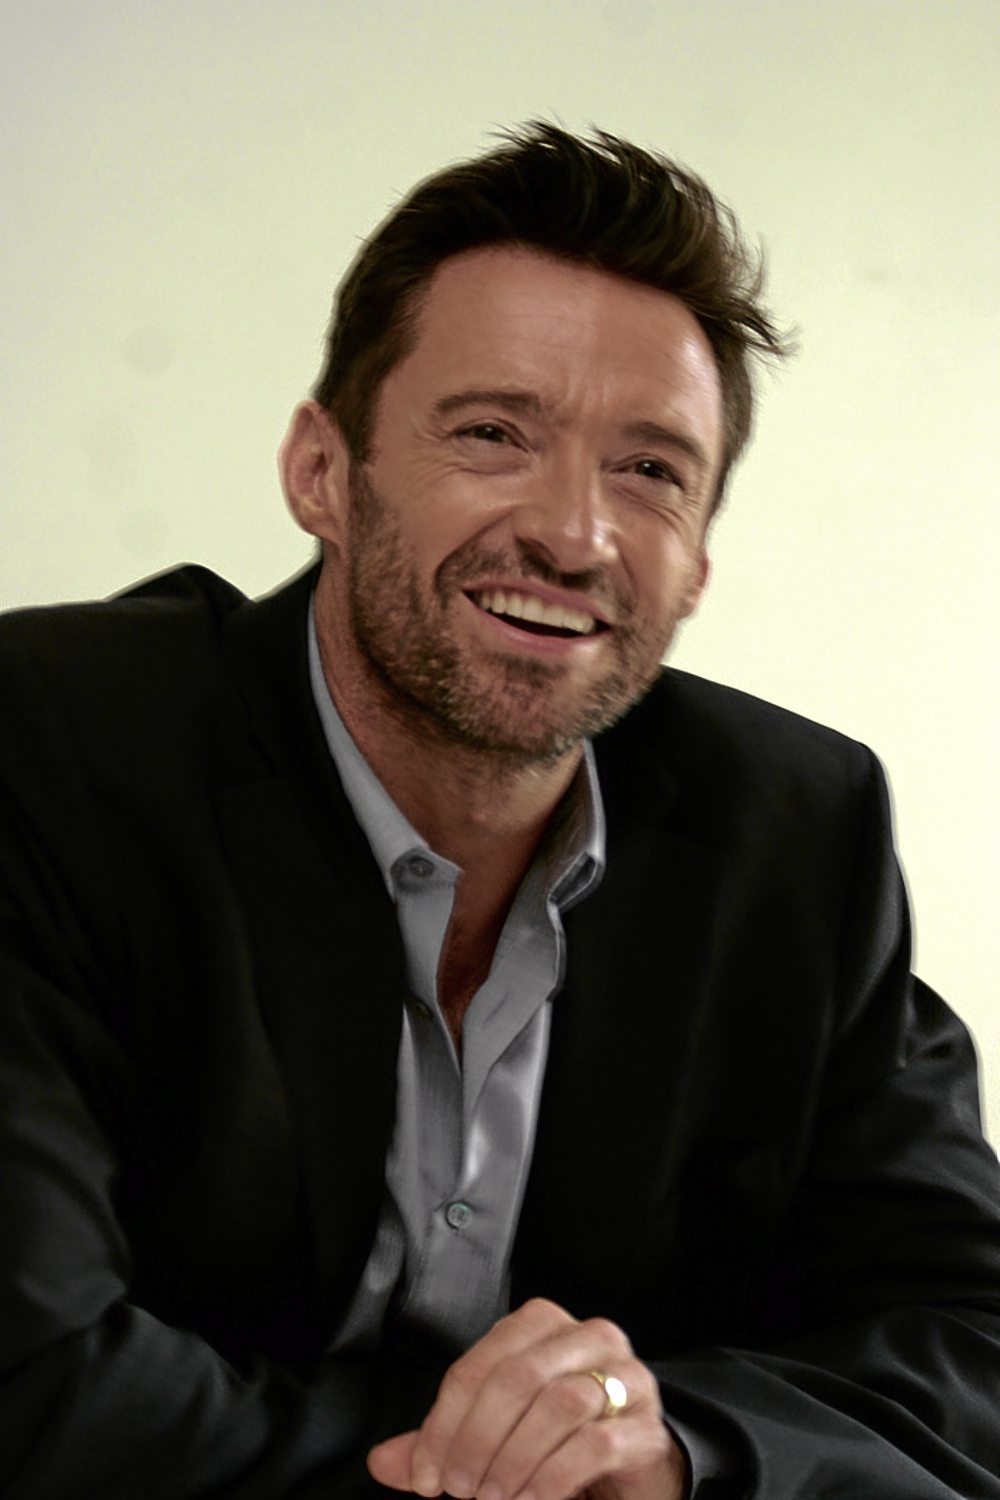 Sydney, New South Wales, Australia, 1968-10-12, Hugh Jackman